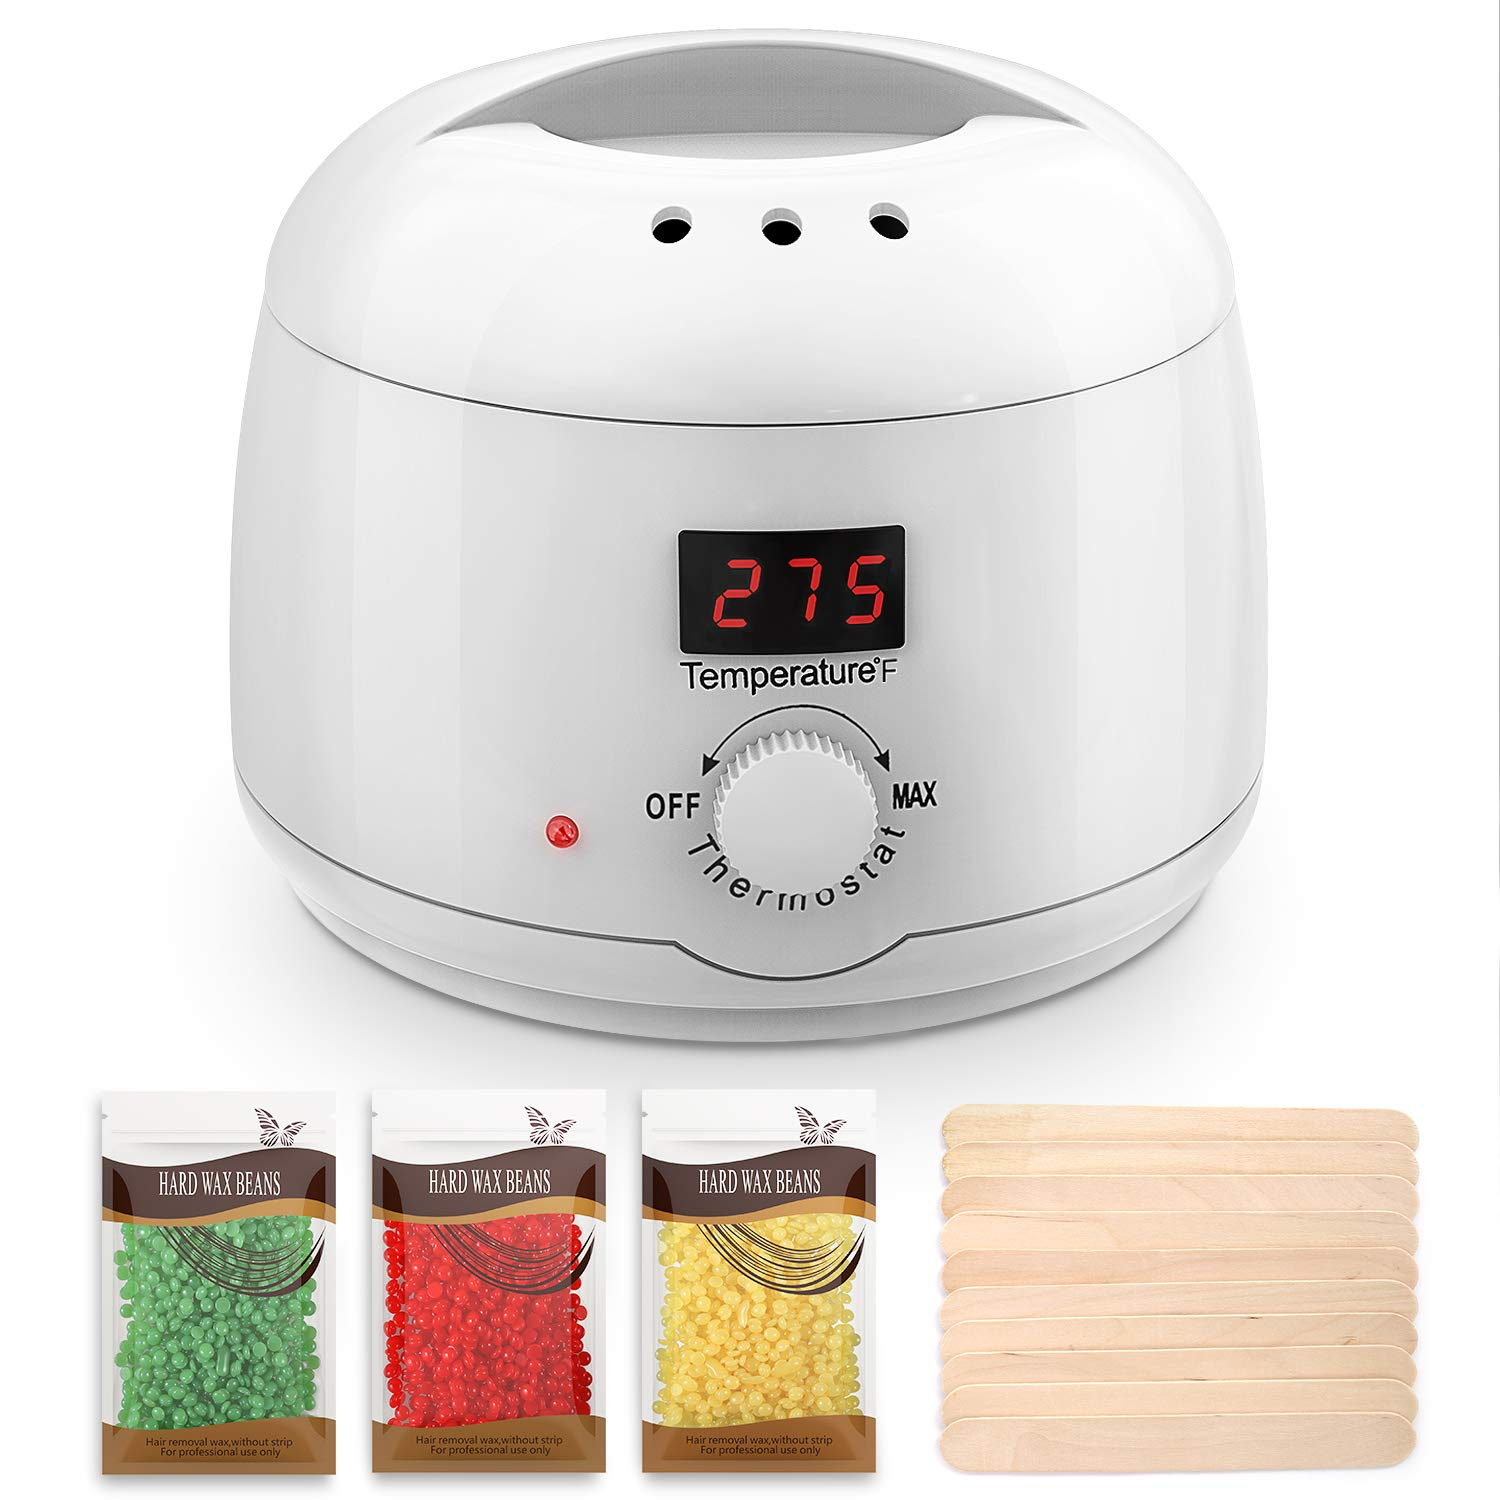 Wax Warmer Hair Removal Kit with LED Display, Professional Safe Wax Heater Pot for Both Women and Men on Arm, Leg and Face, 3 Packs Hard Wax Beans and 10 Applicator Sticks Included HOMIEE